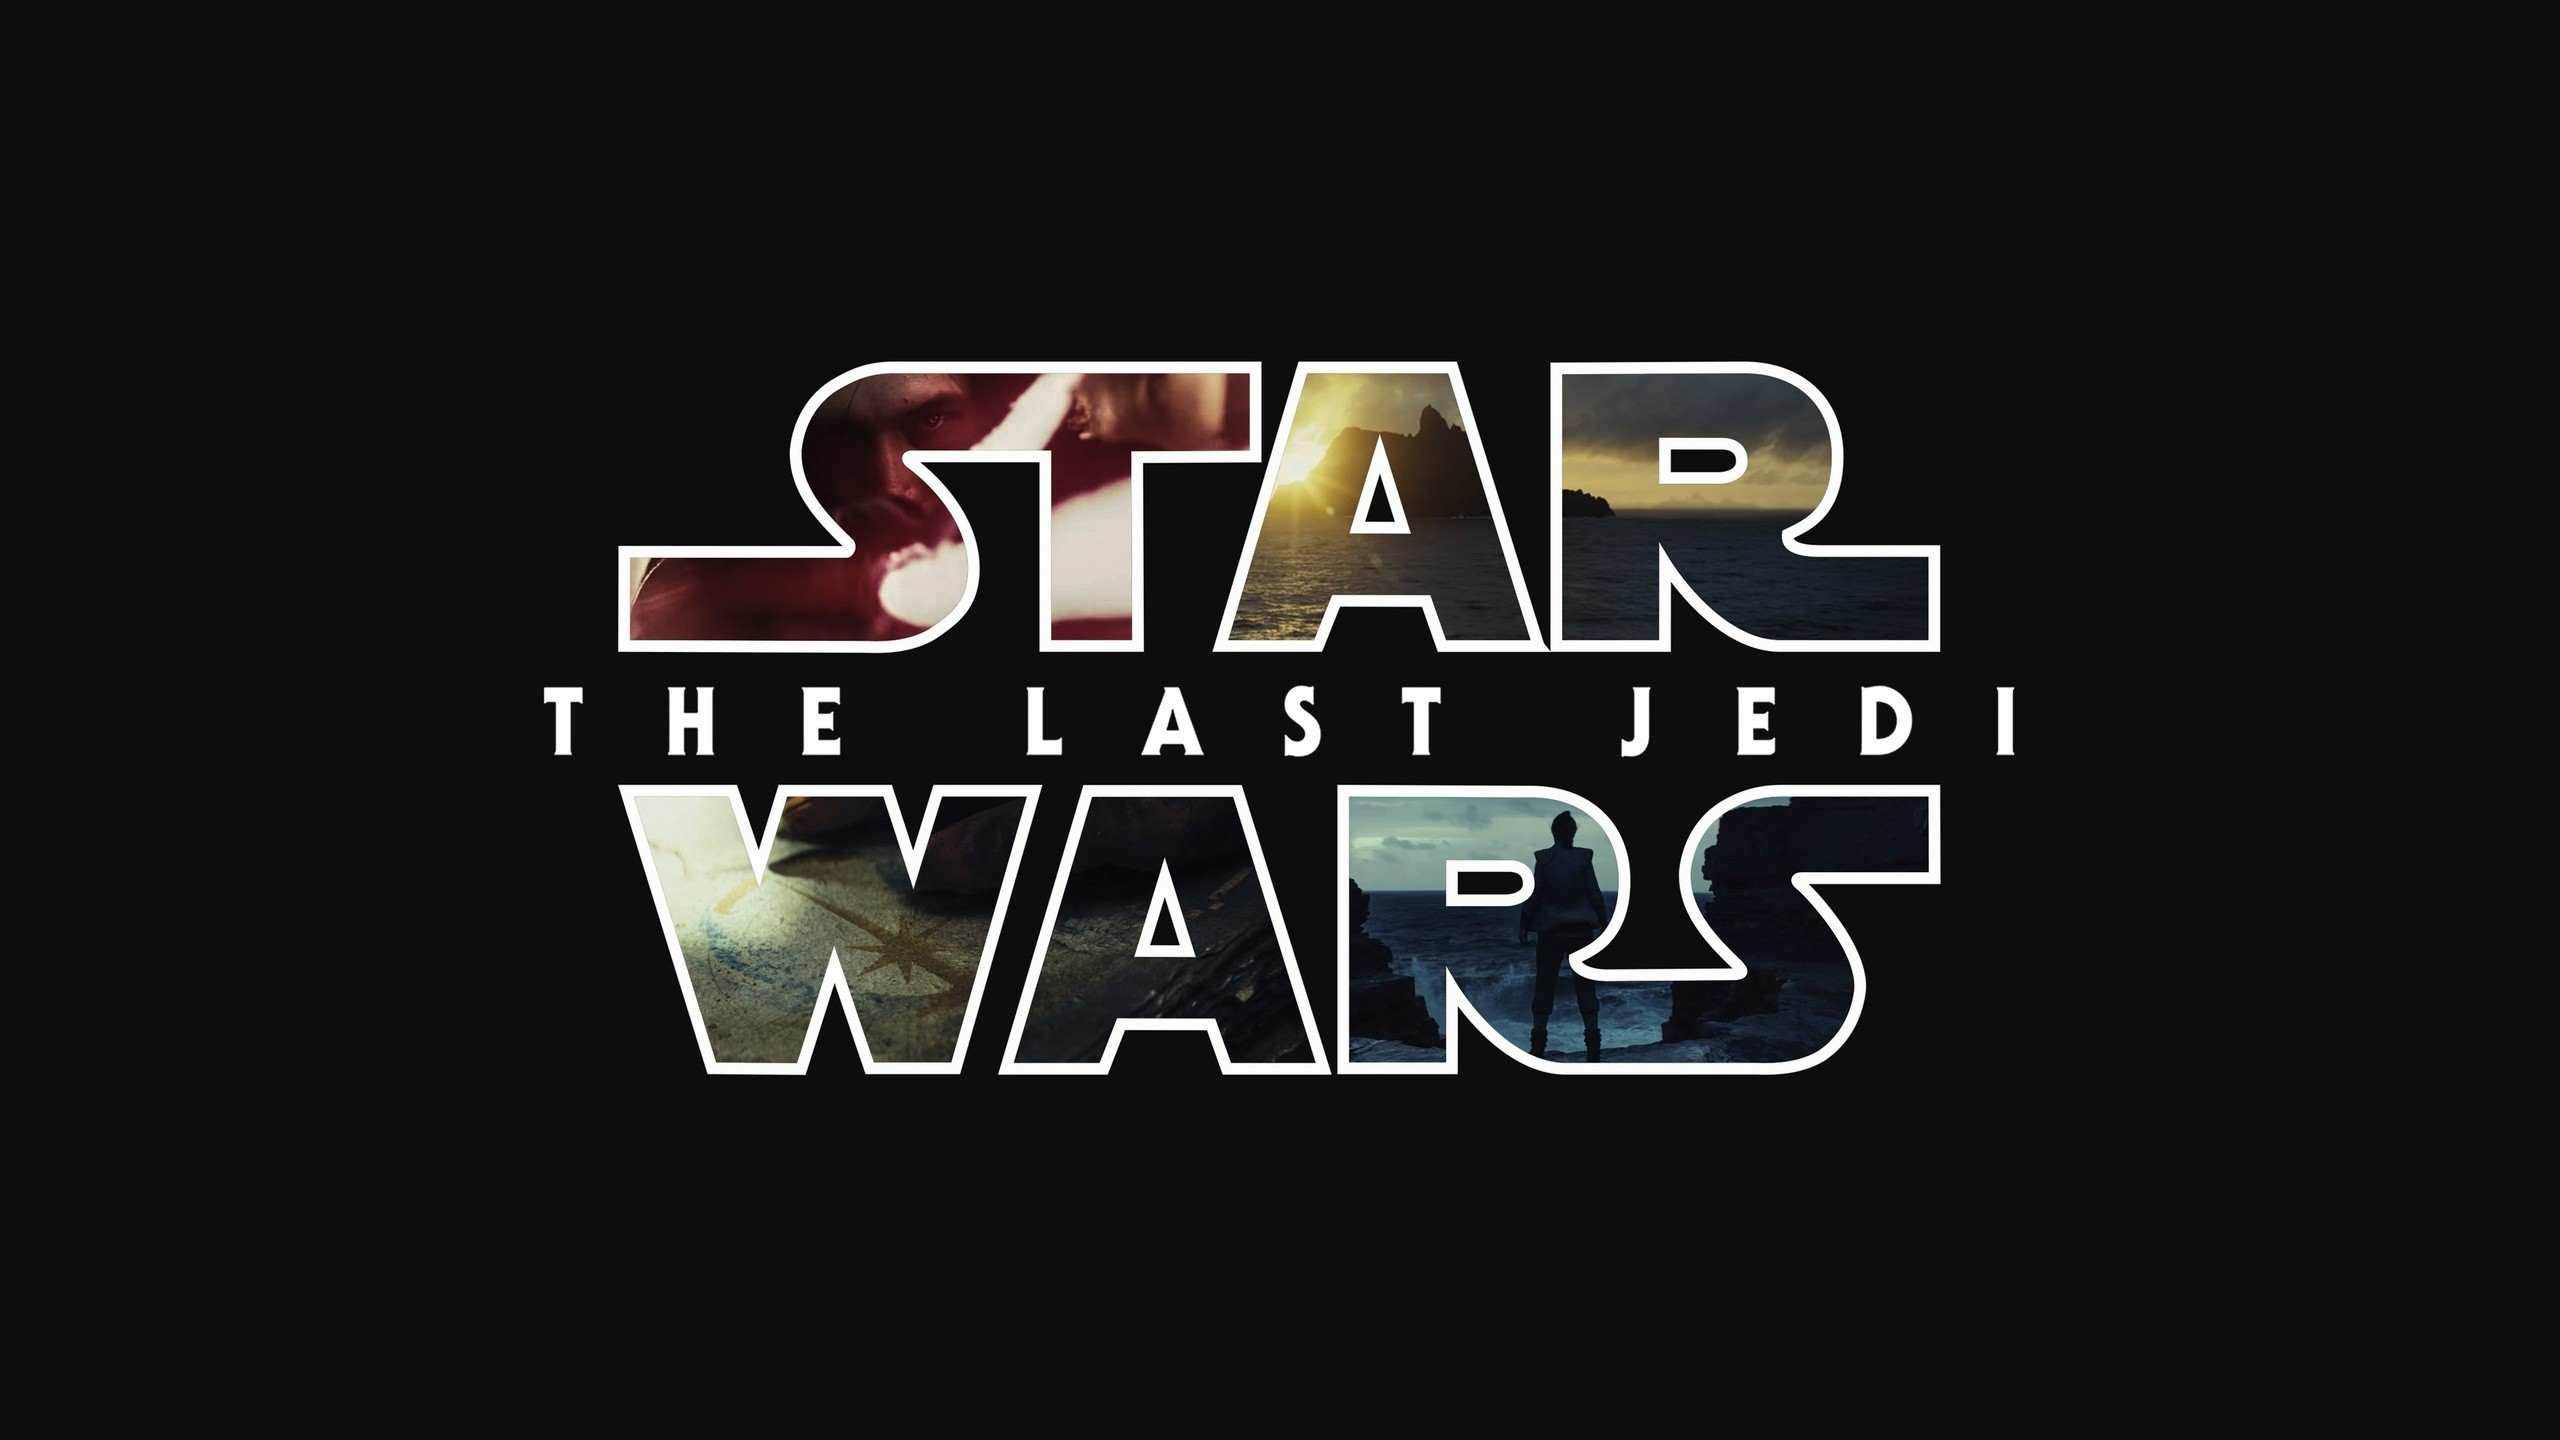 Res: 2560x1440, 4k Star Wars The Last Jedi Logo 2017 Movie, Movie Posters, Star Wars The